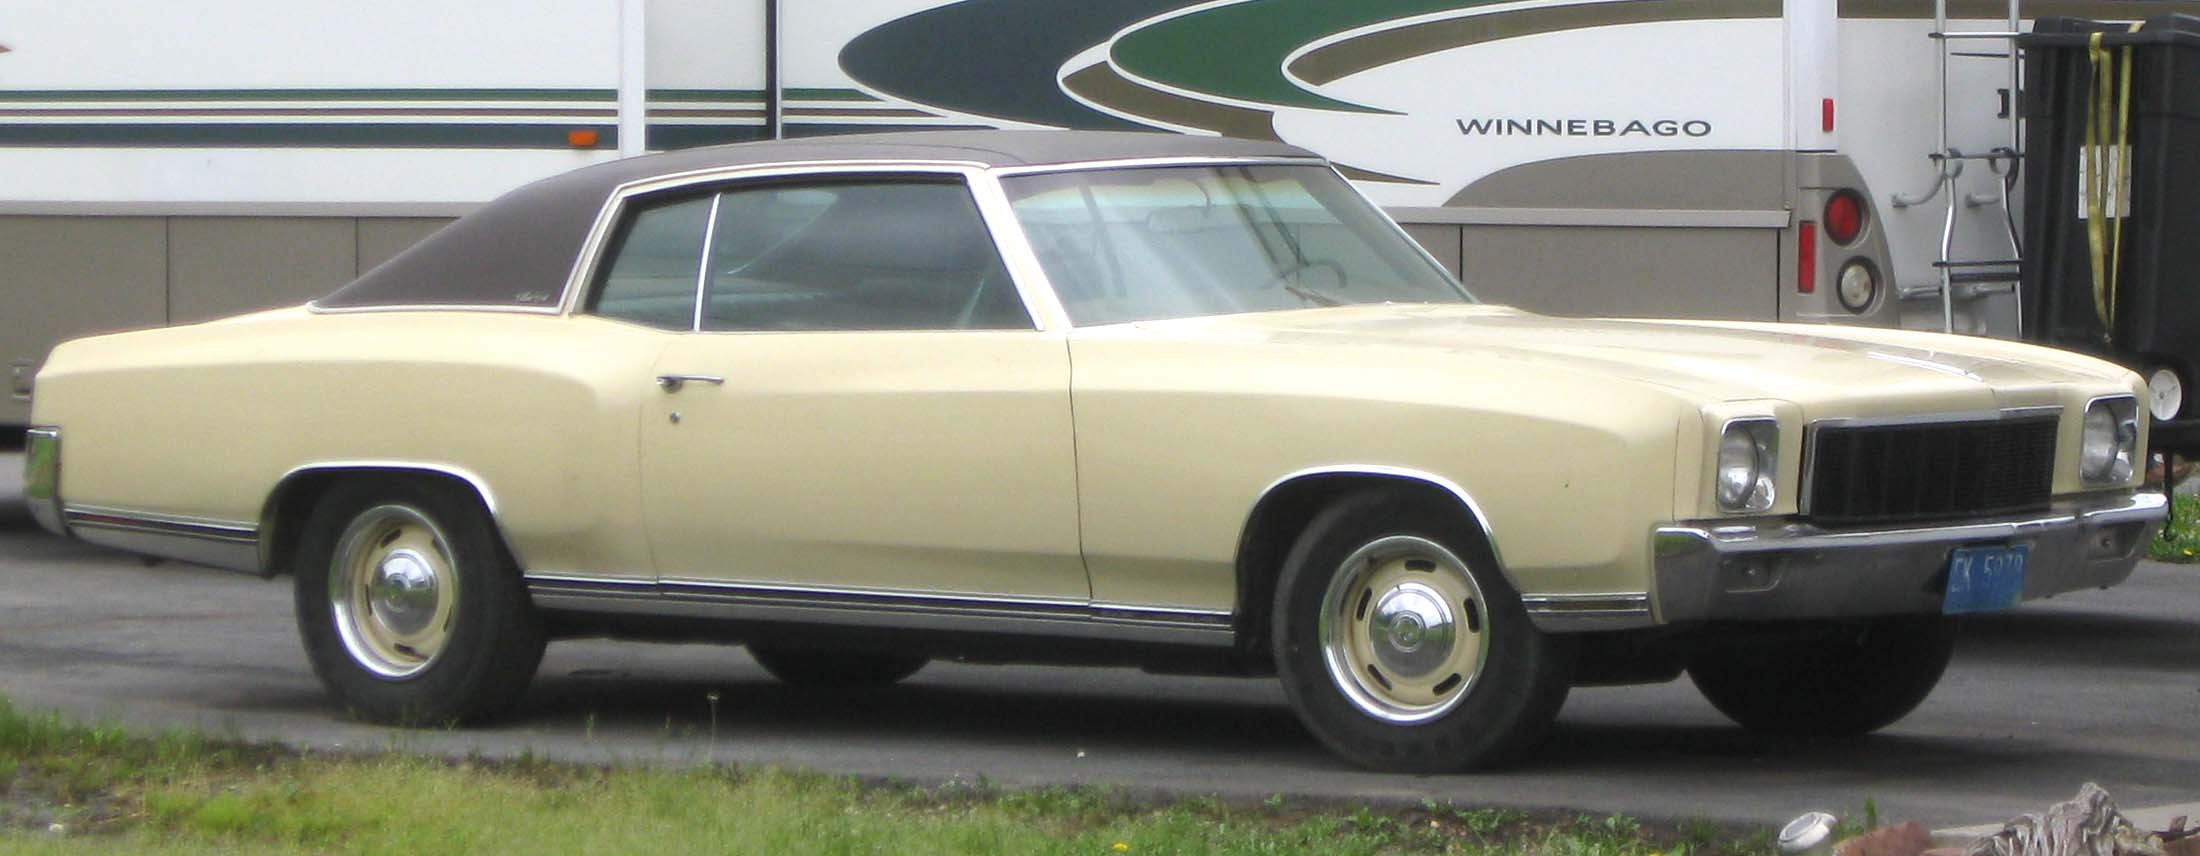 File1971 Chevrolet Monte Carlo 05 19 2010 Wikimedia Commons Suburban Wiring Diagram